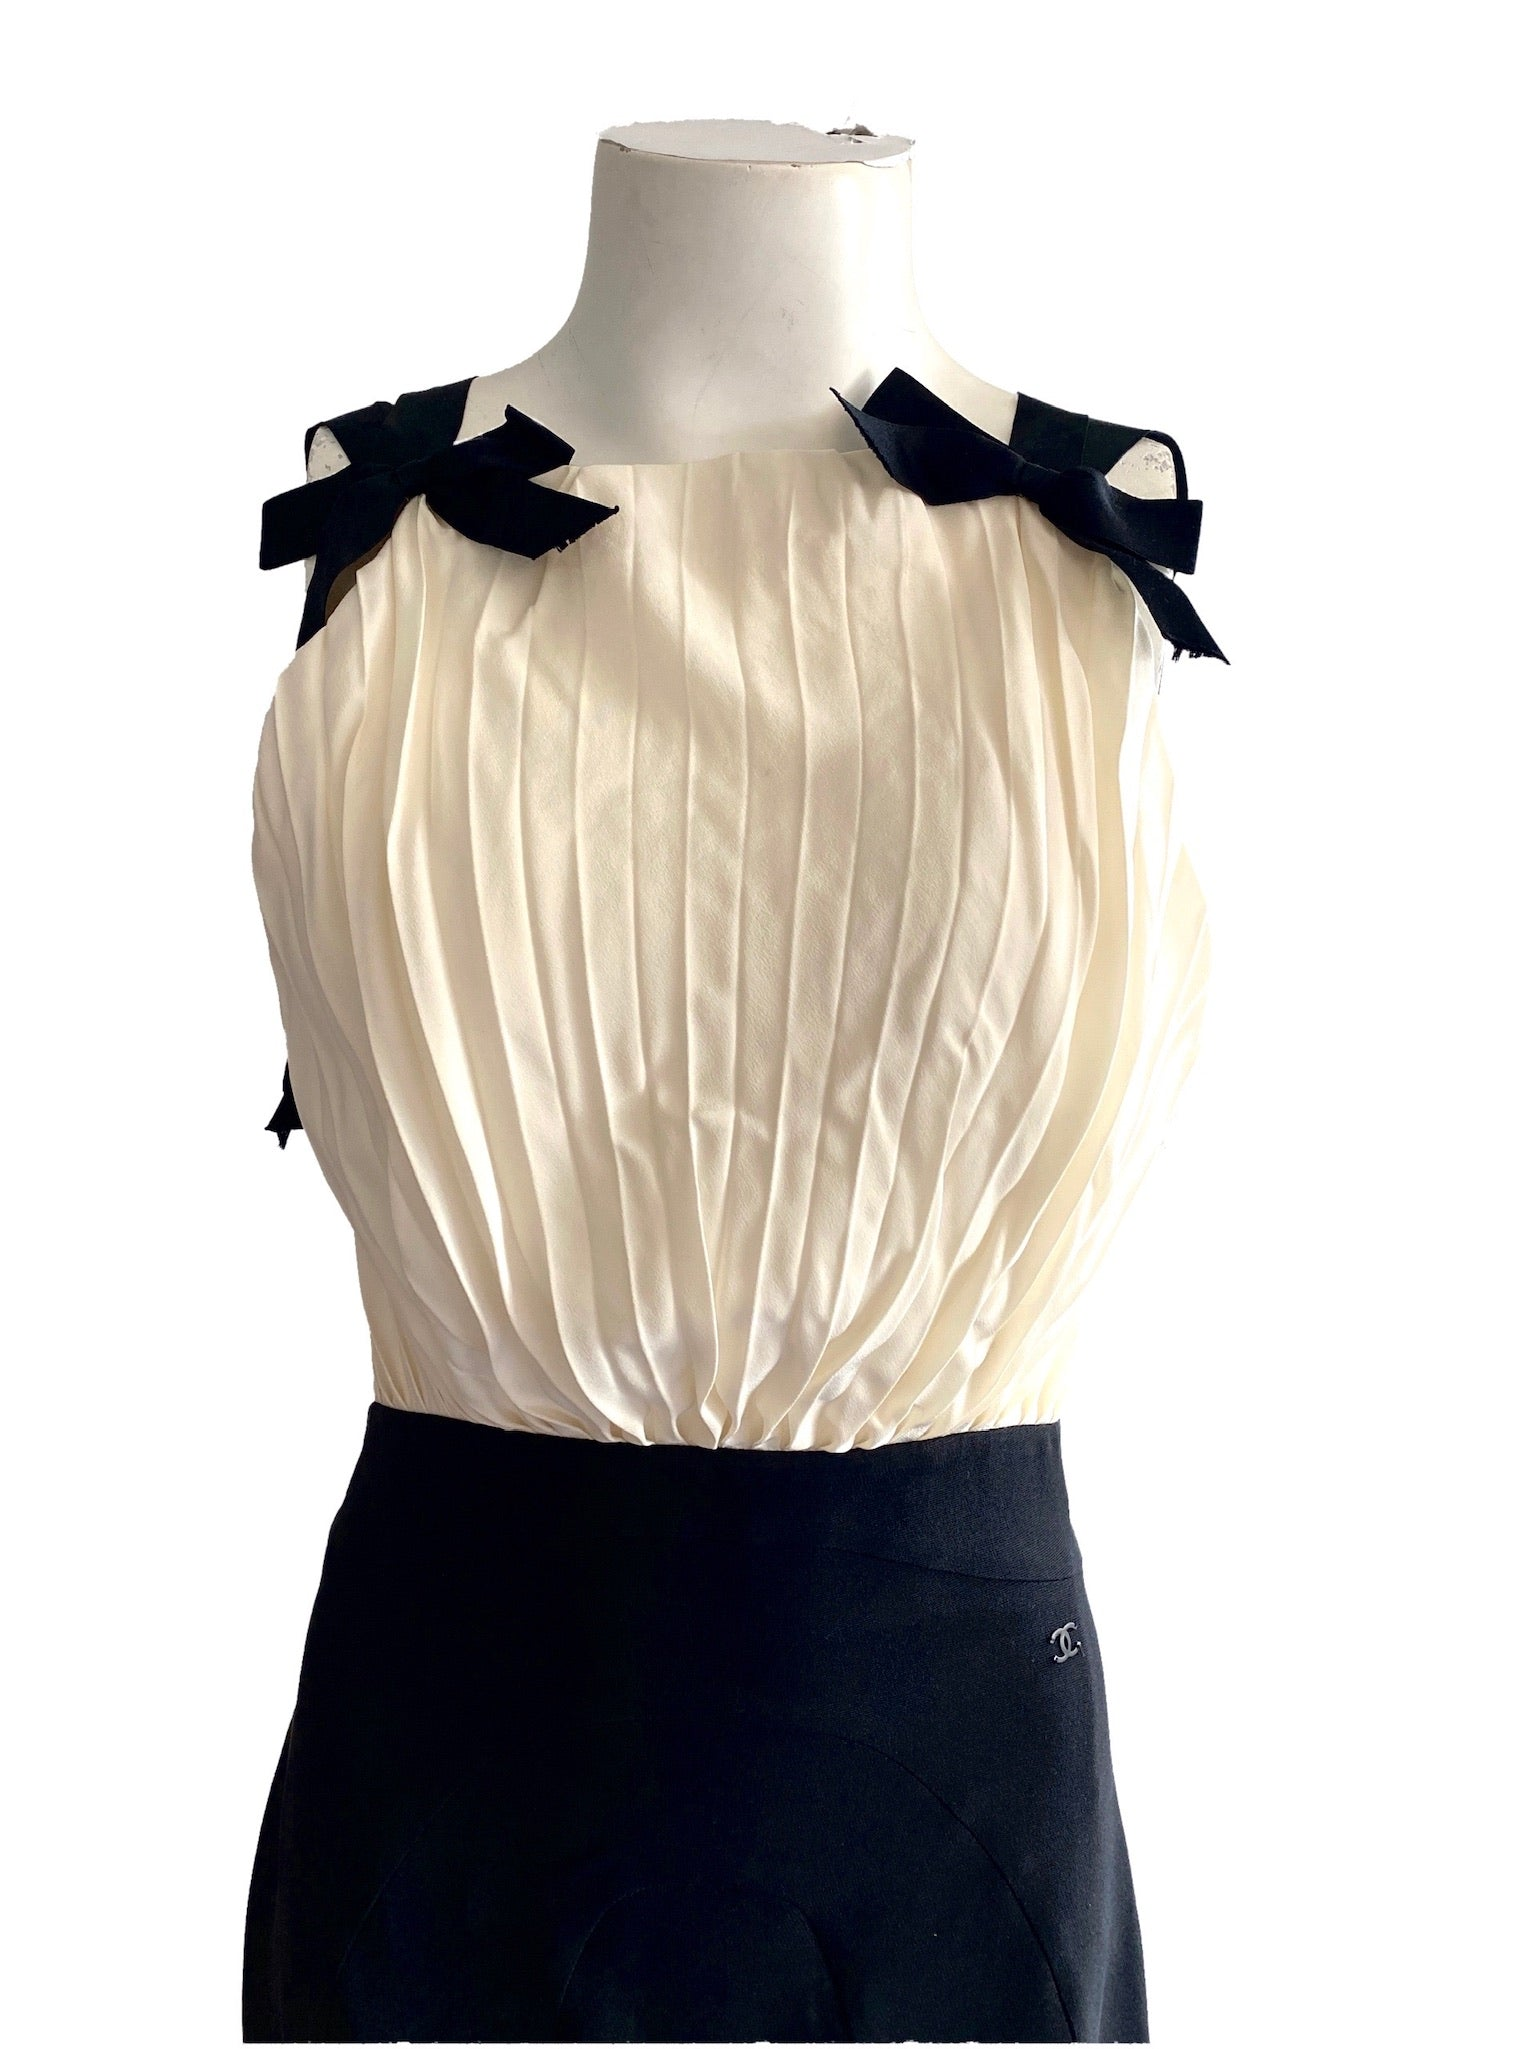 Chanel Ivory and Black Gown Size 38